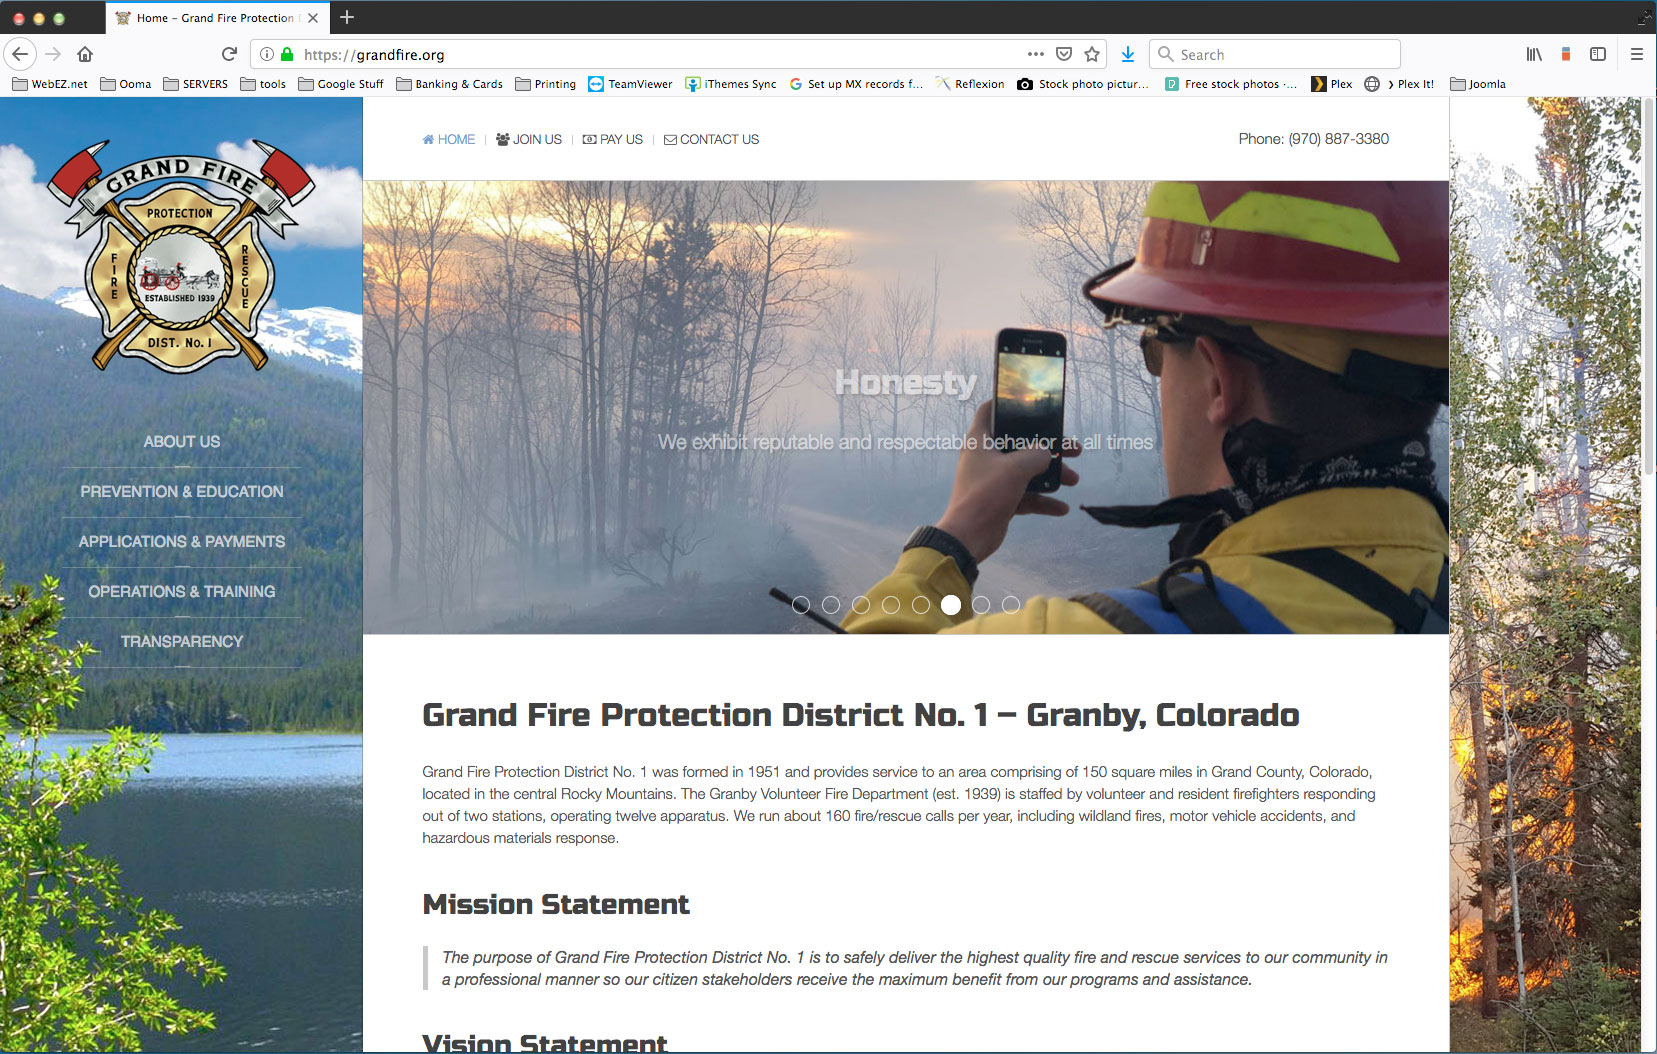 Grand Fire Protection District No. 1